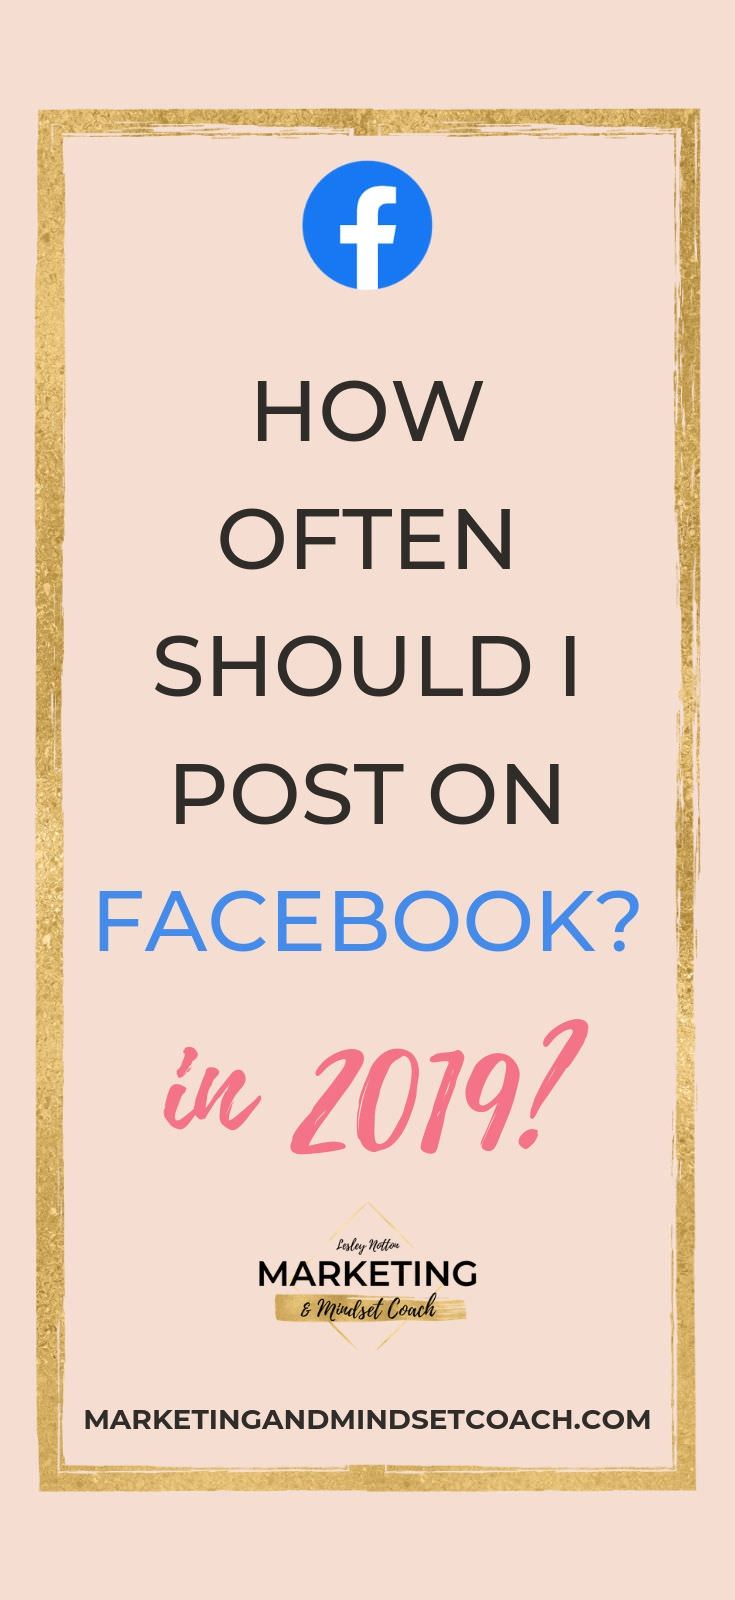 HOW OFTEN TO POST ON FACEBOOK 2019